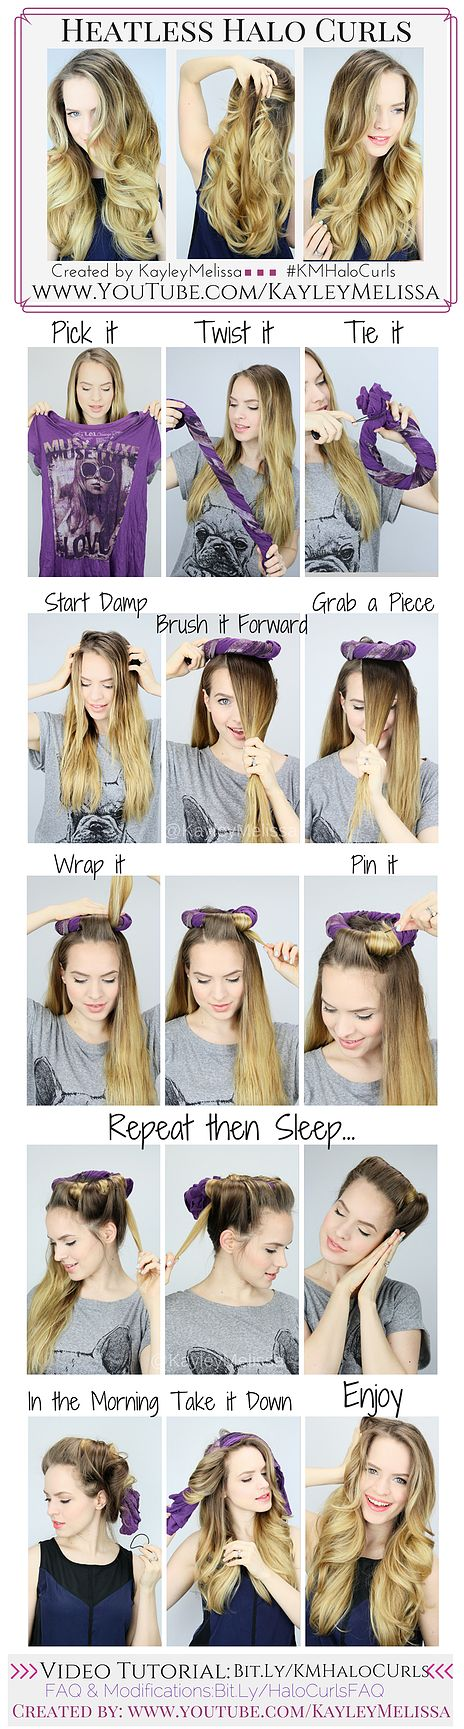 I tried this the other night and it really works! It's a little difficult to wrap your hair, but it's totally worth it. -Allison